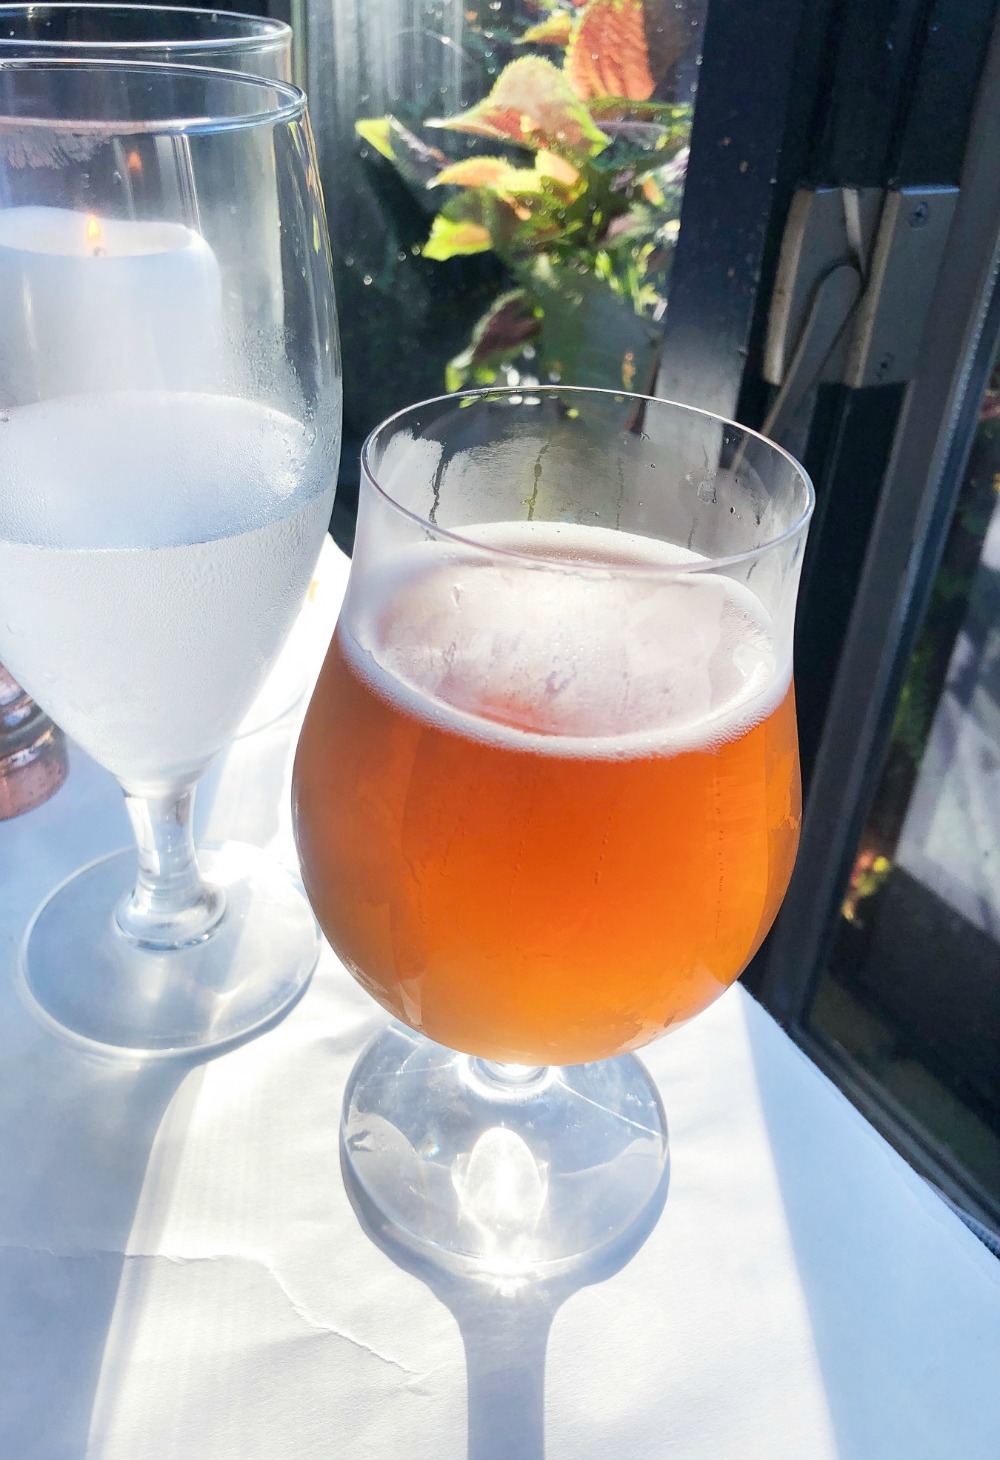 New Jersey Photo Diary I Trap Rock Brewery in Berkeley Heights #Travel #TravelBlogger